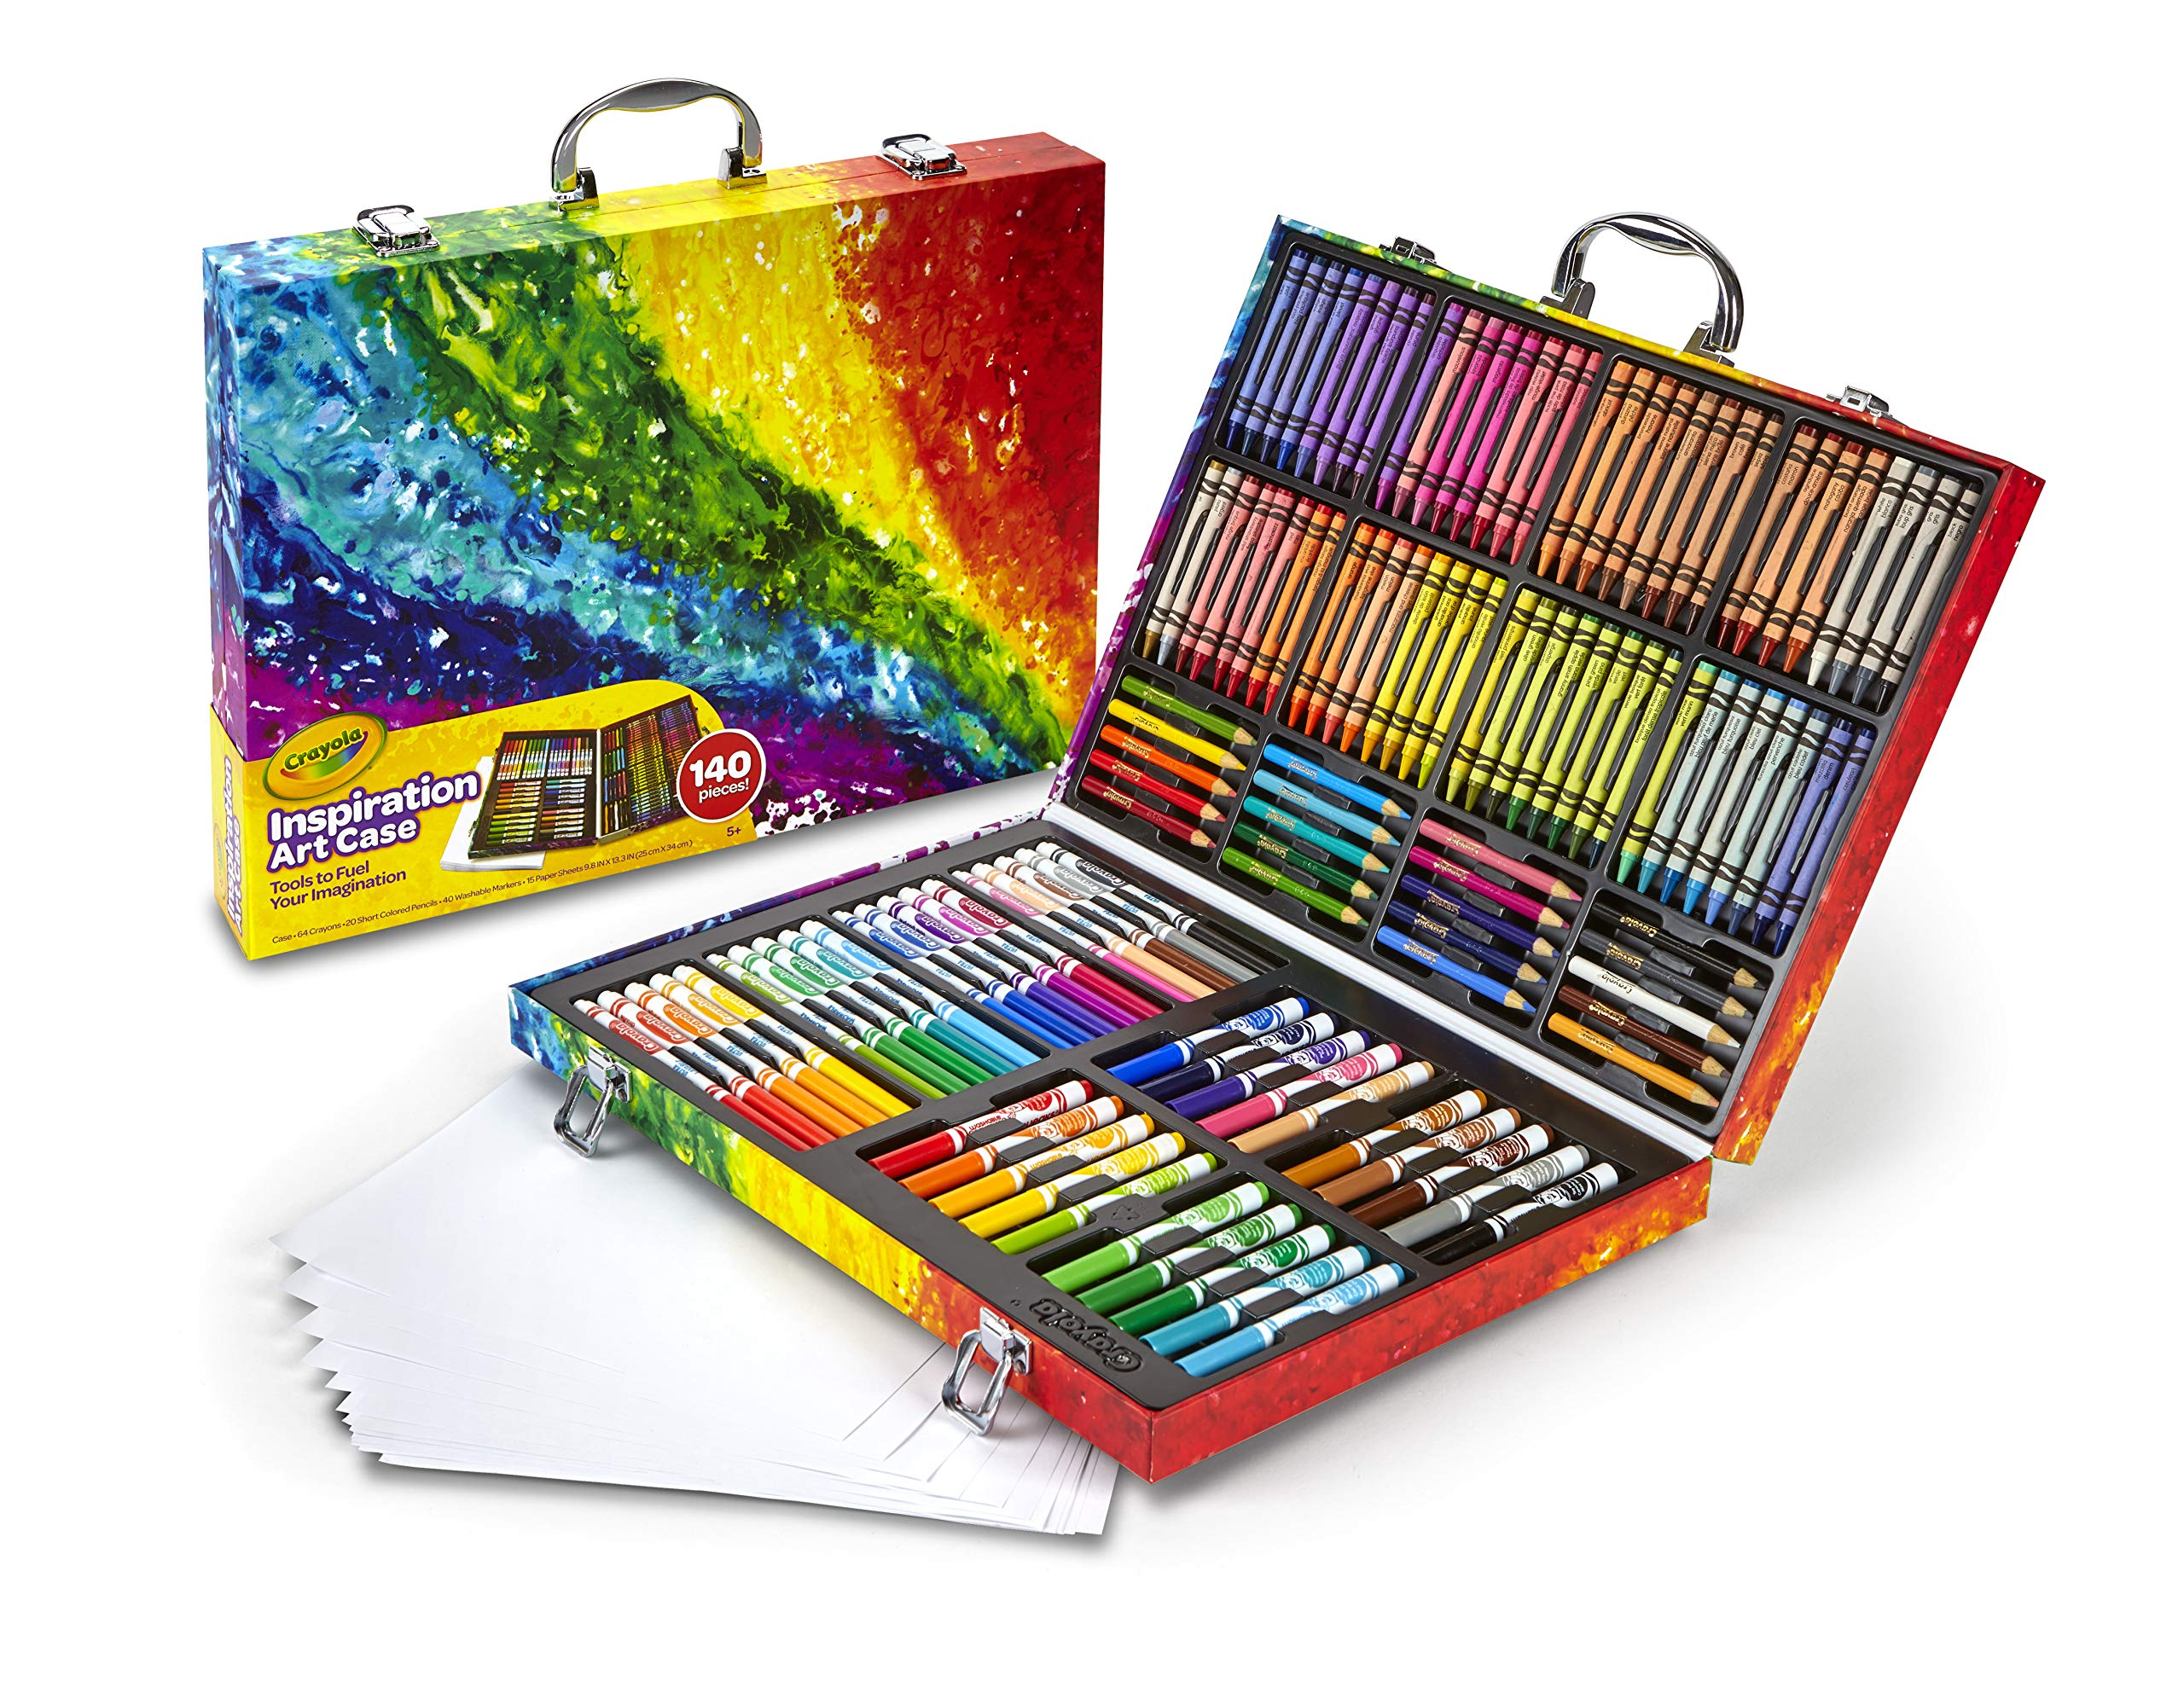 Crayola Inspiration Art Case: 140 Pieces, Art Set, Gifts for Kids, Age 4, 5, 6, by Crayola (Image #3)